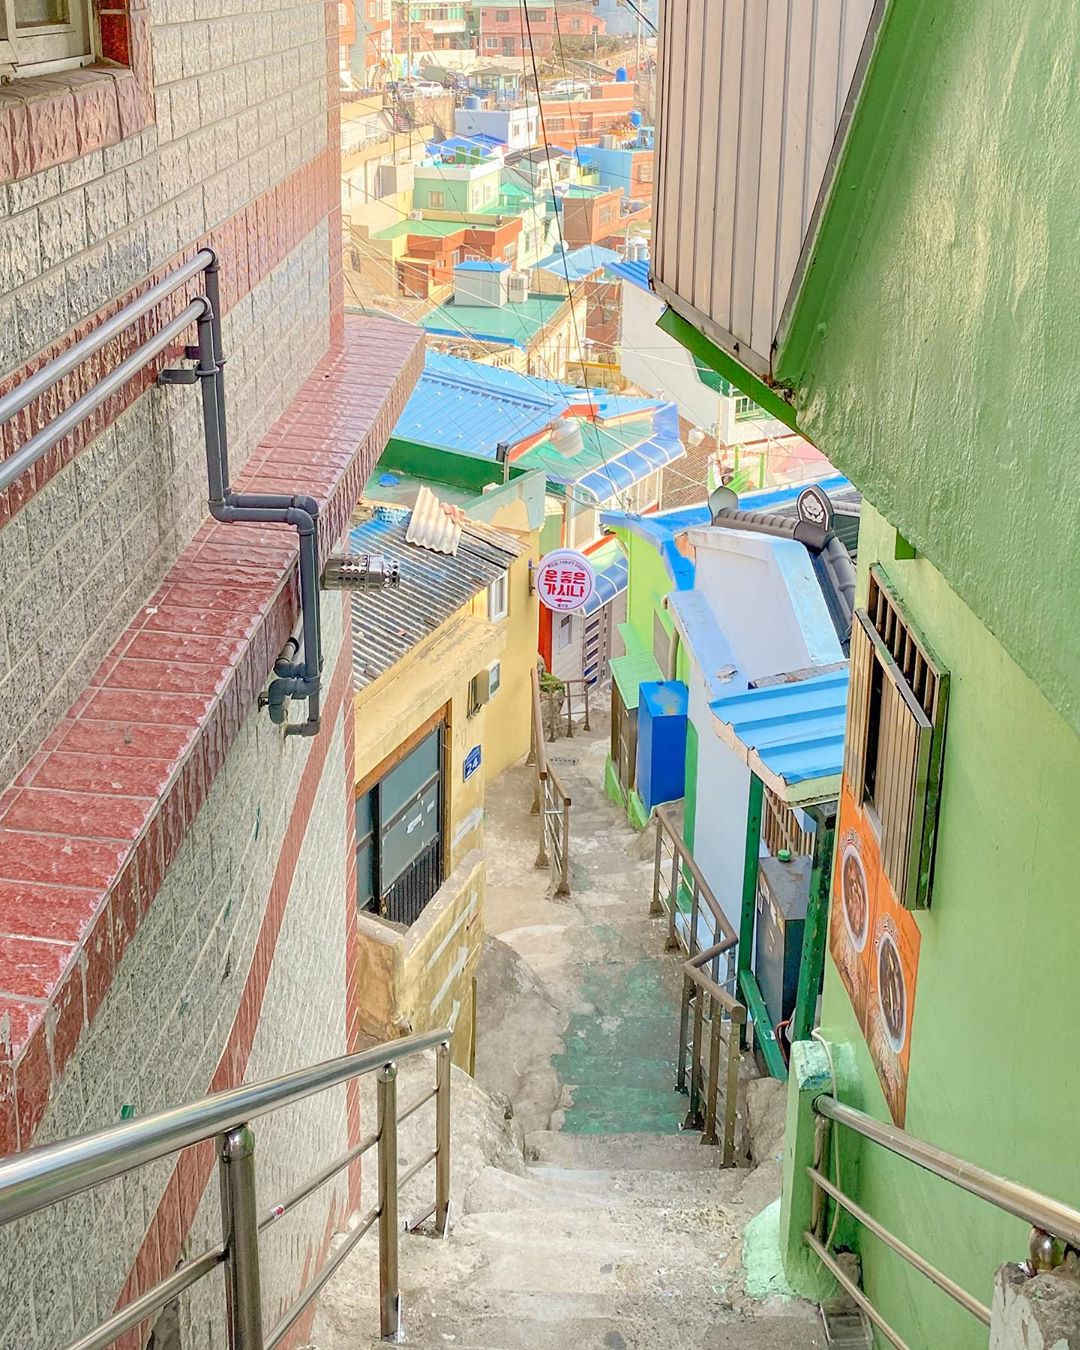 Gamcheon Culture Village - Narrow stairways